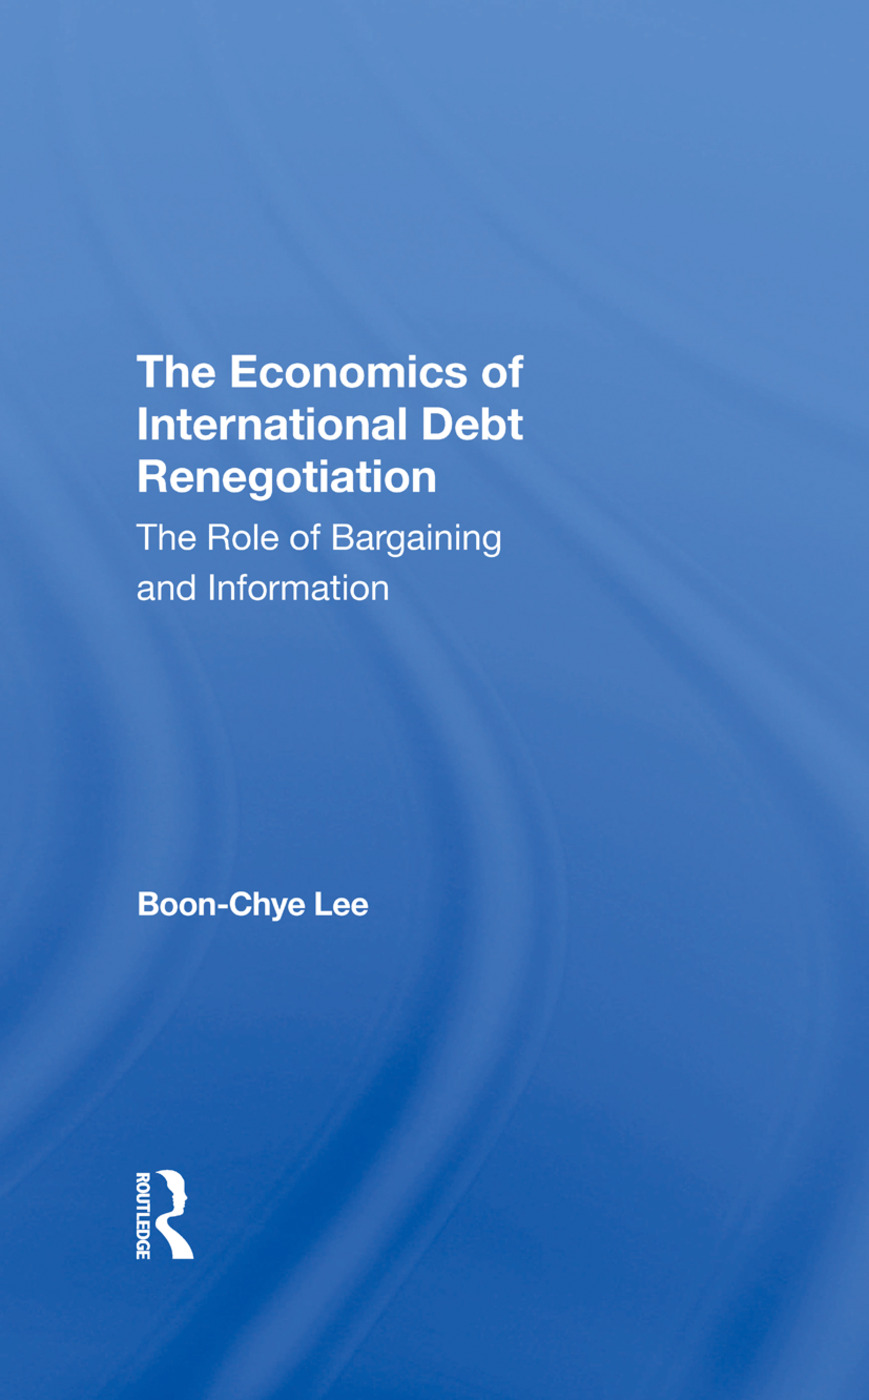 The Economics Of International Debt Renegotiation: The Role Of Bargaining And Information book cover